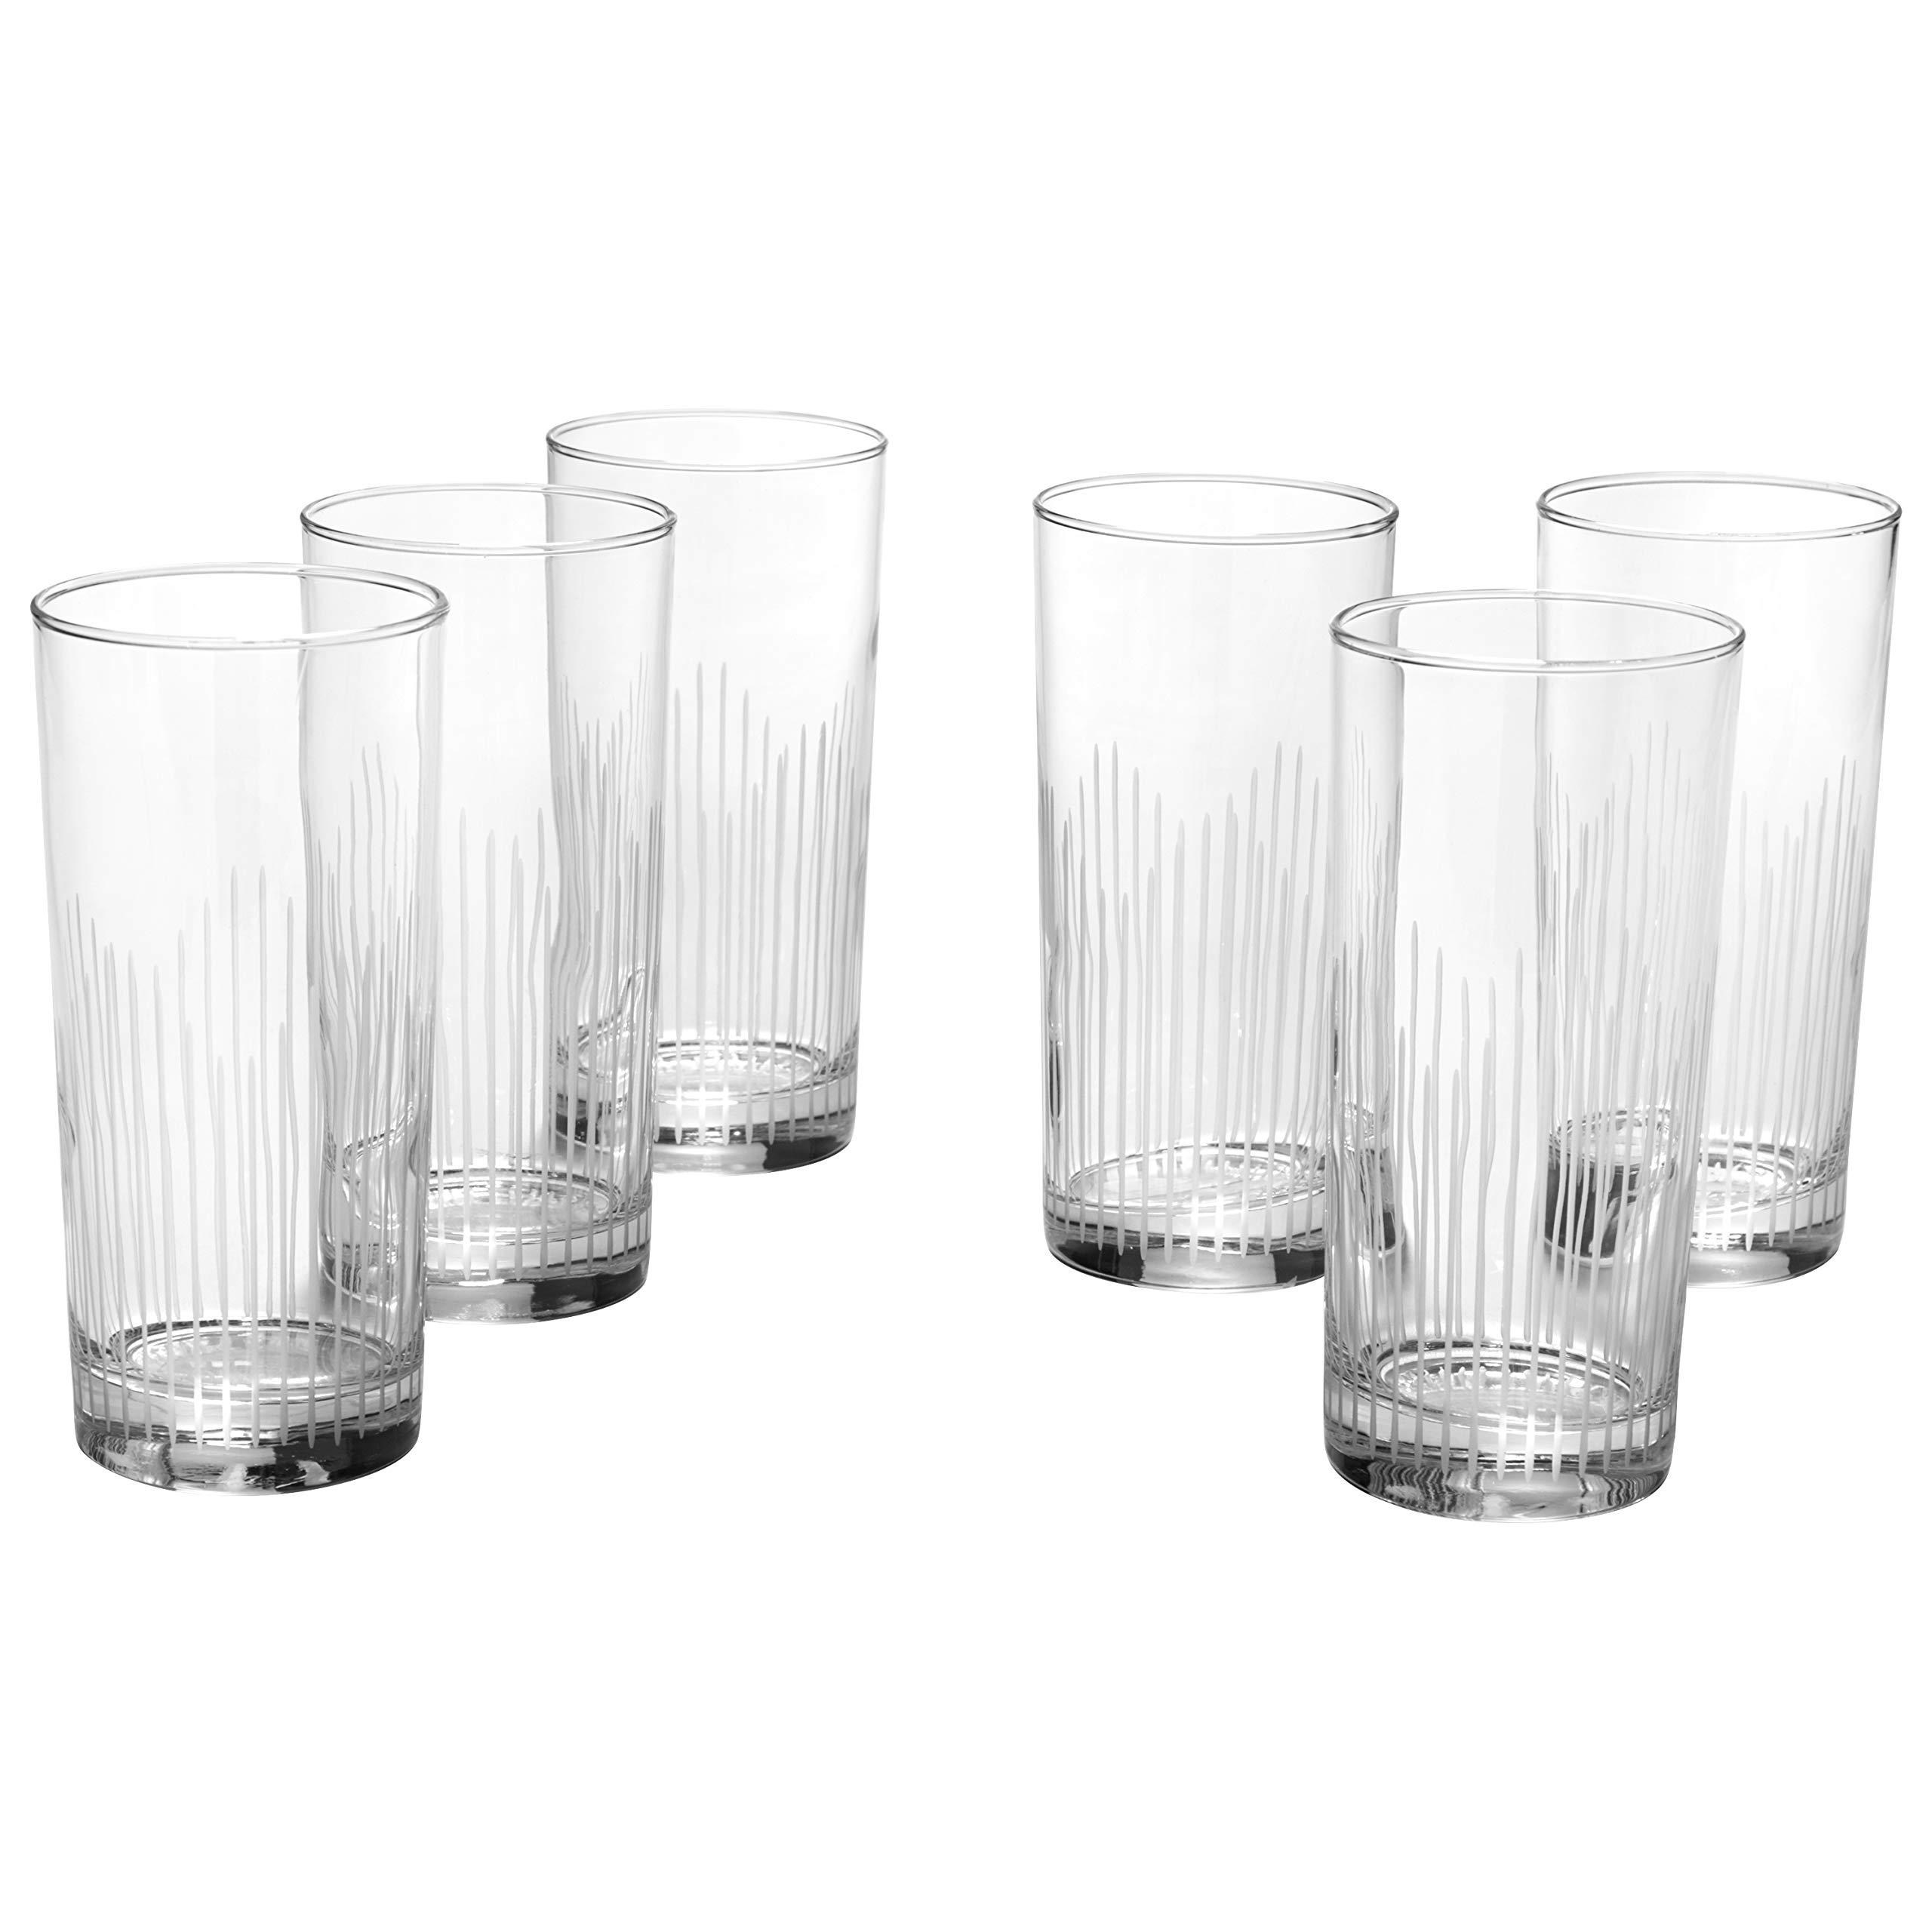 Rivet Modern 16 oz. Highball Glass, Set of 6, Clear Glass with Decorative Etching by Rivet